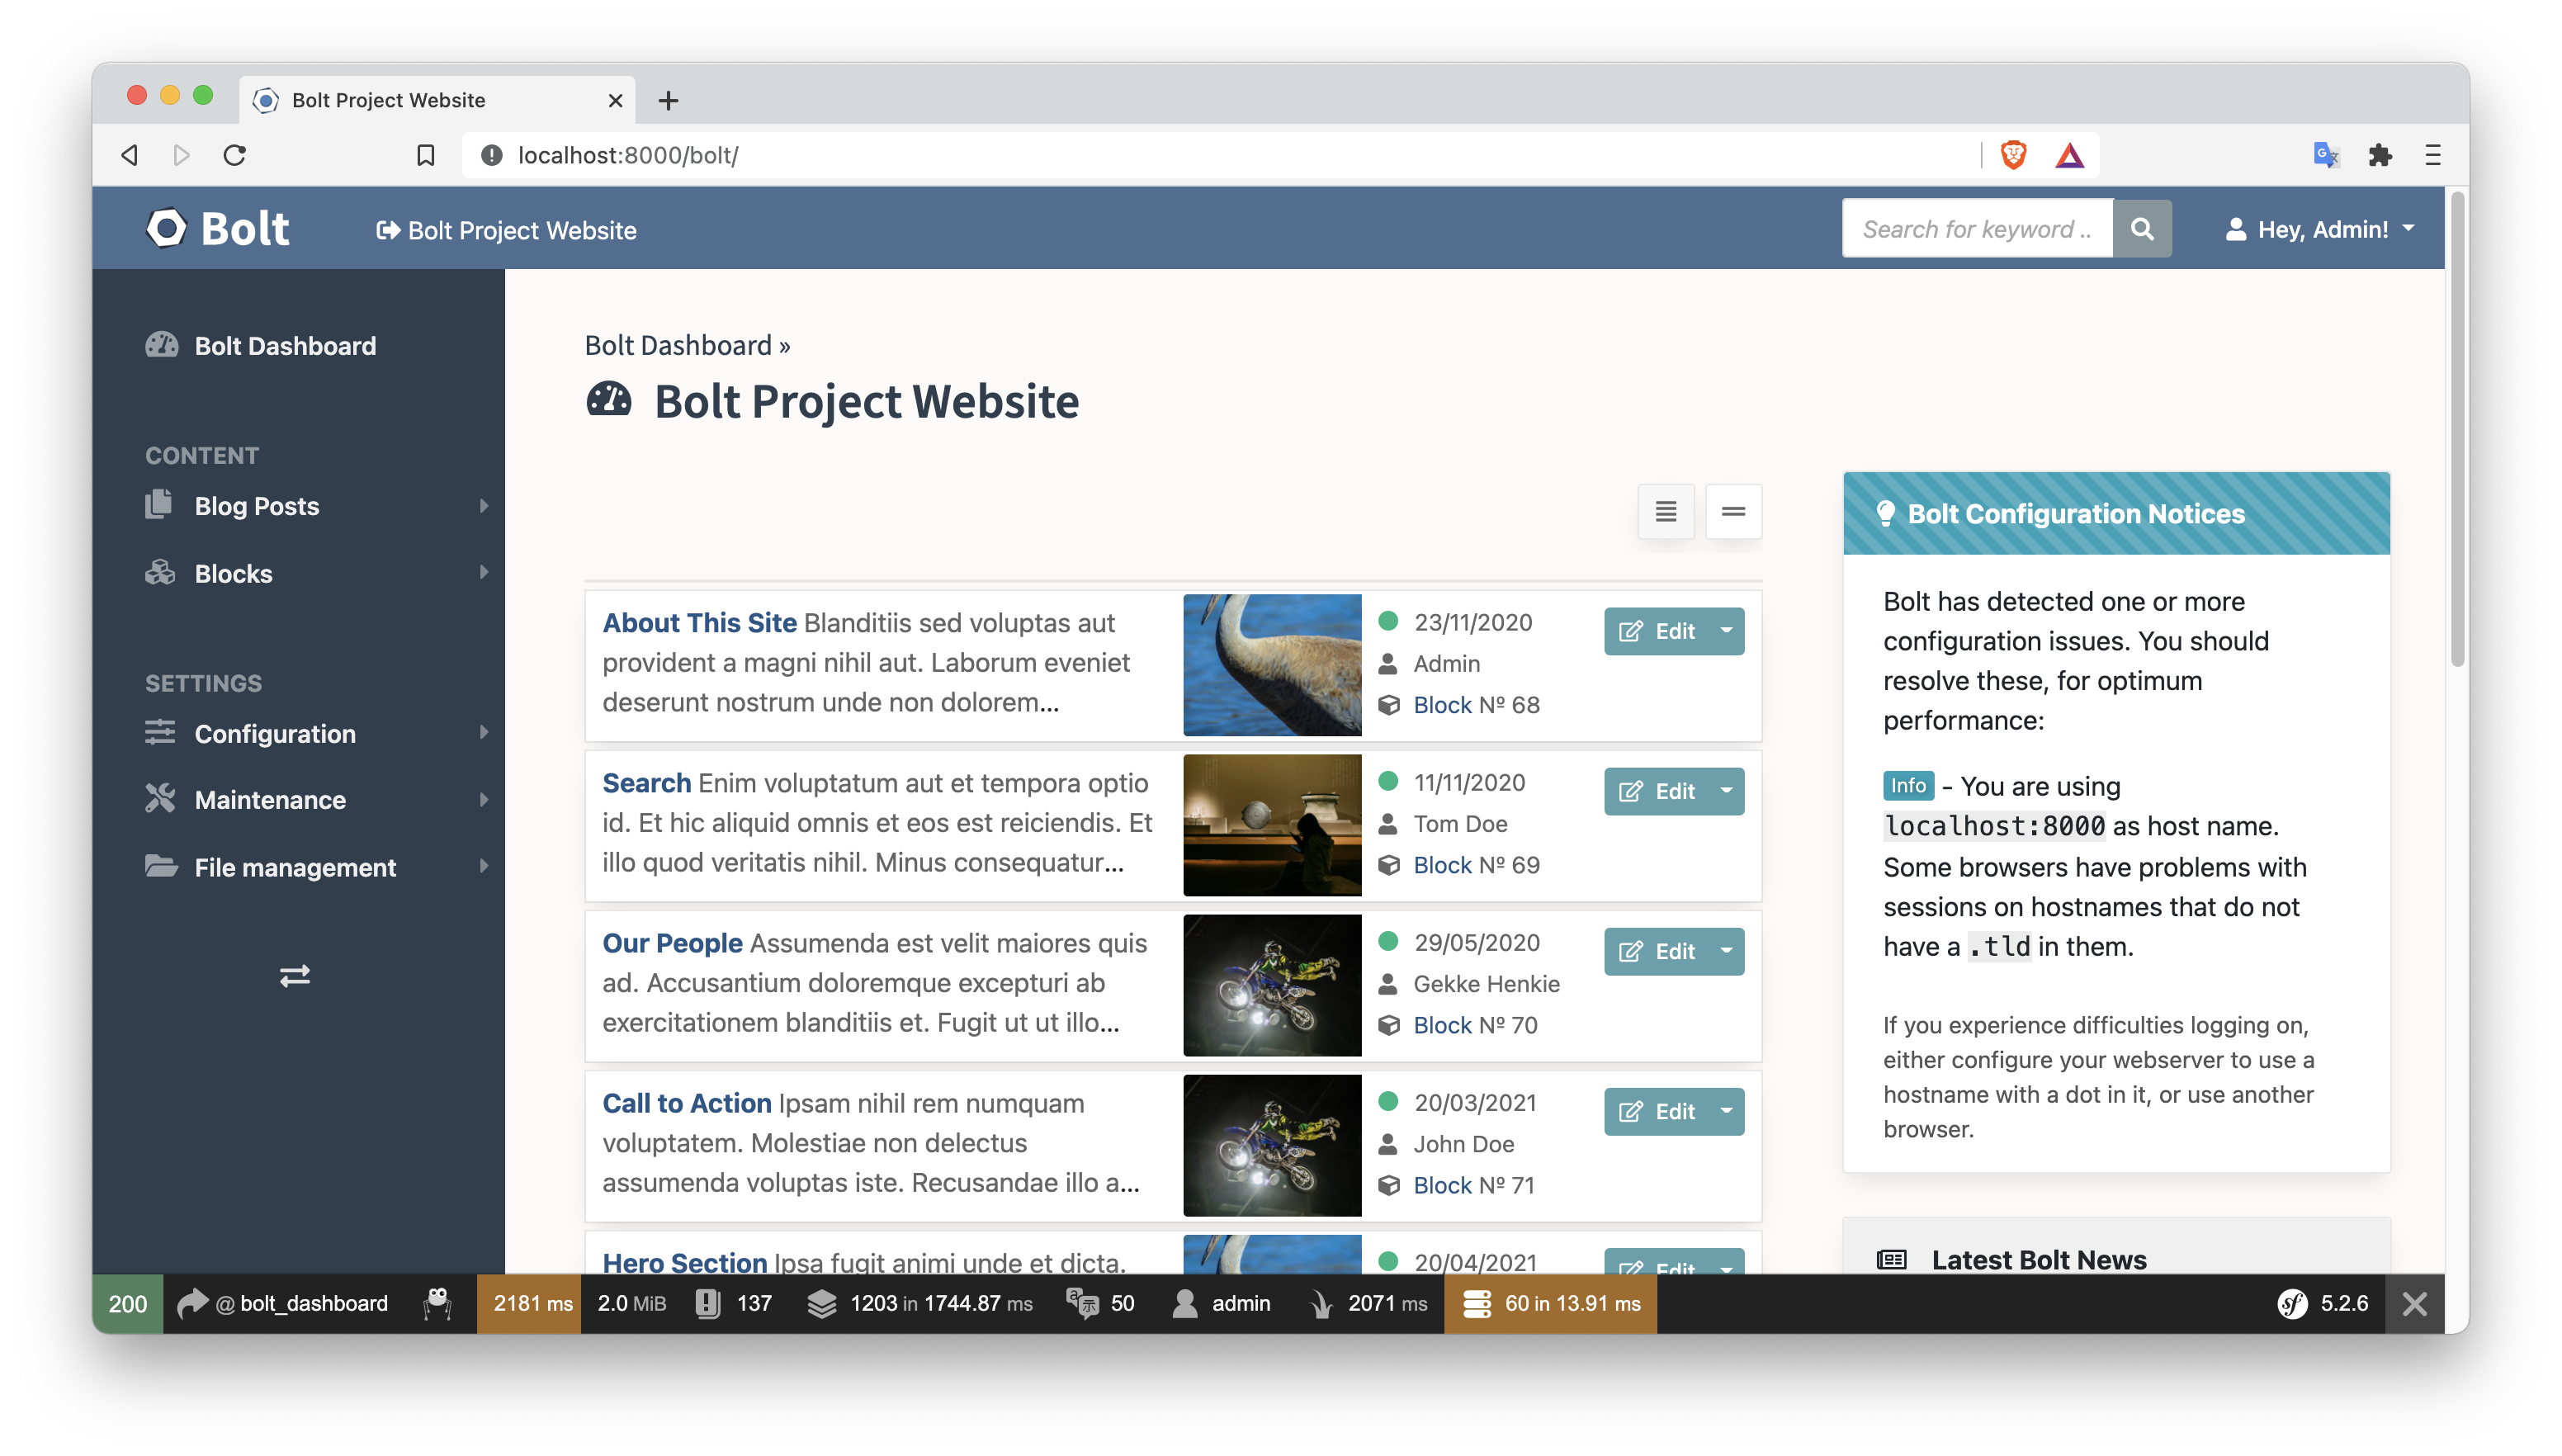 The Bolt Editor showing the Blog Posts and Blocks content types on the left